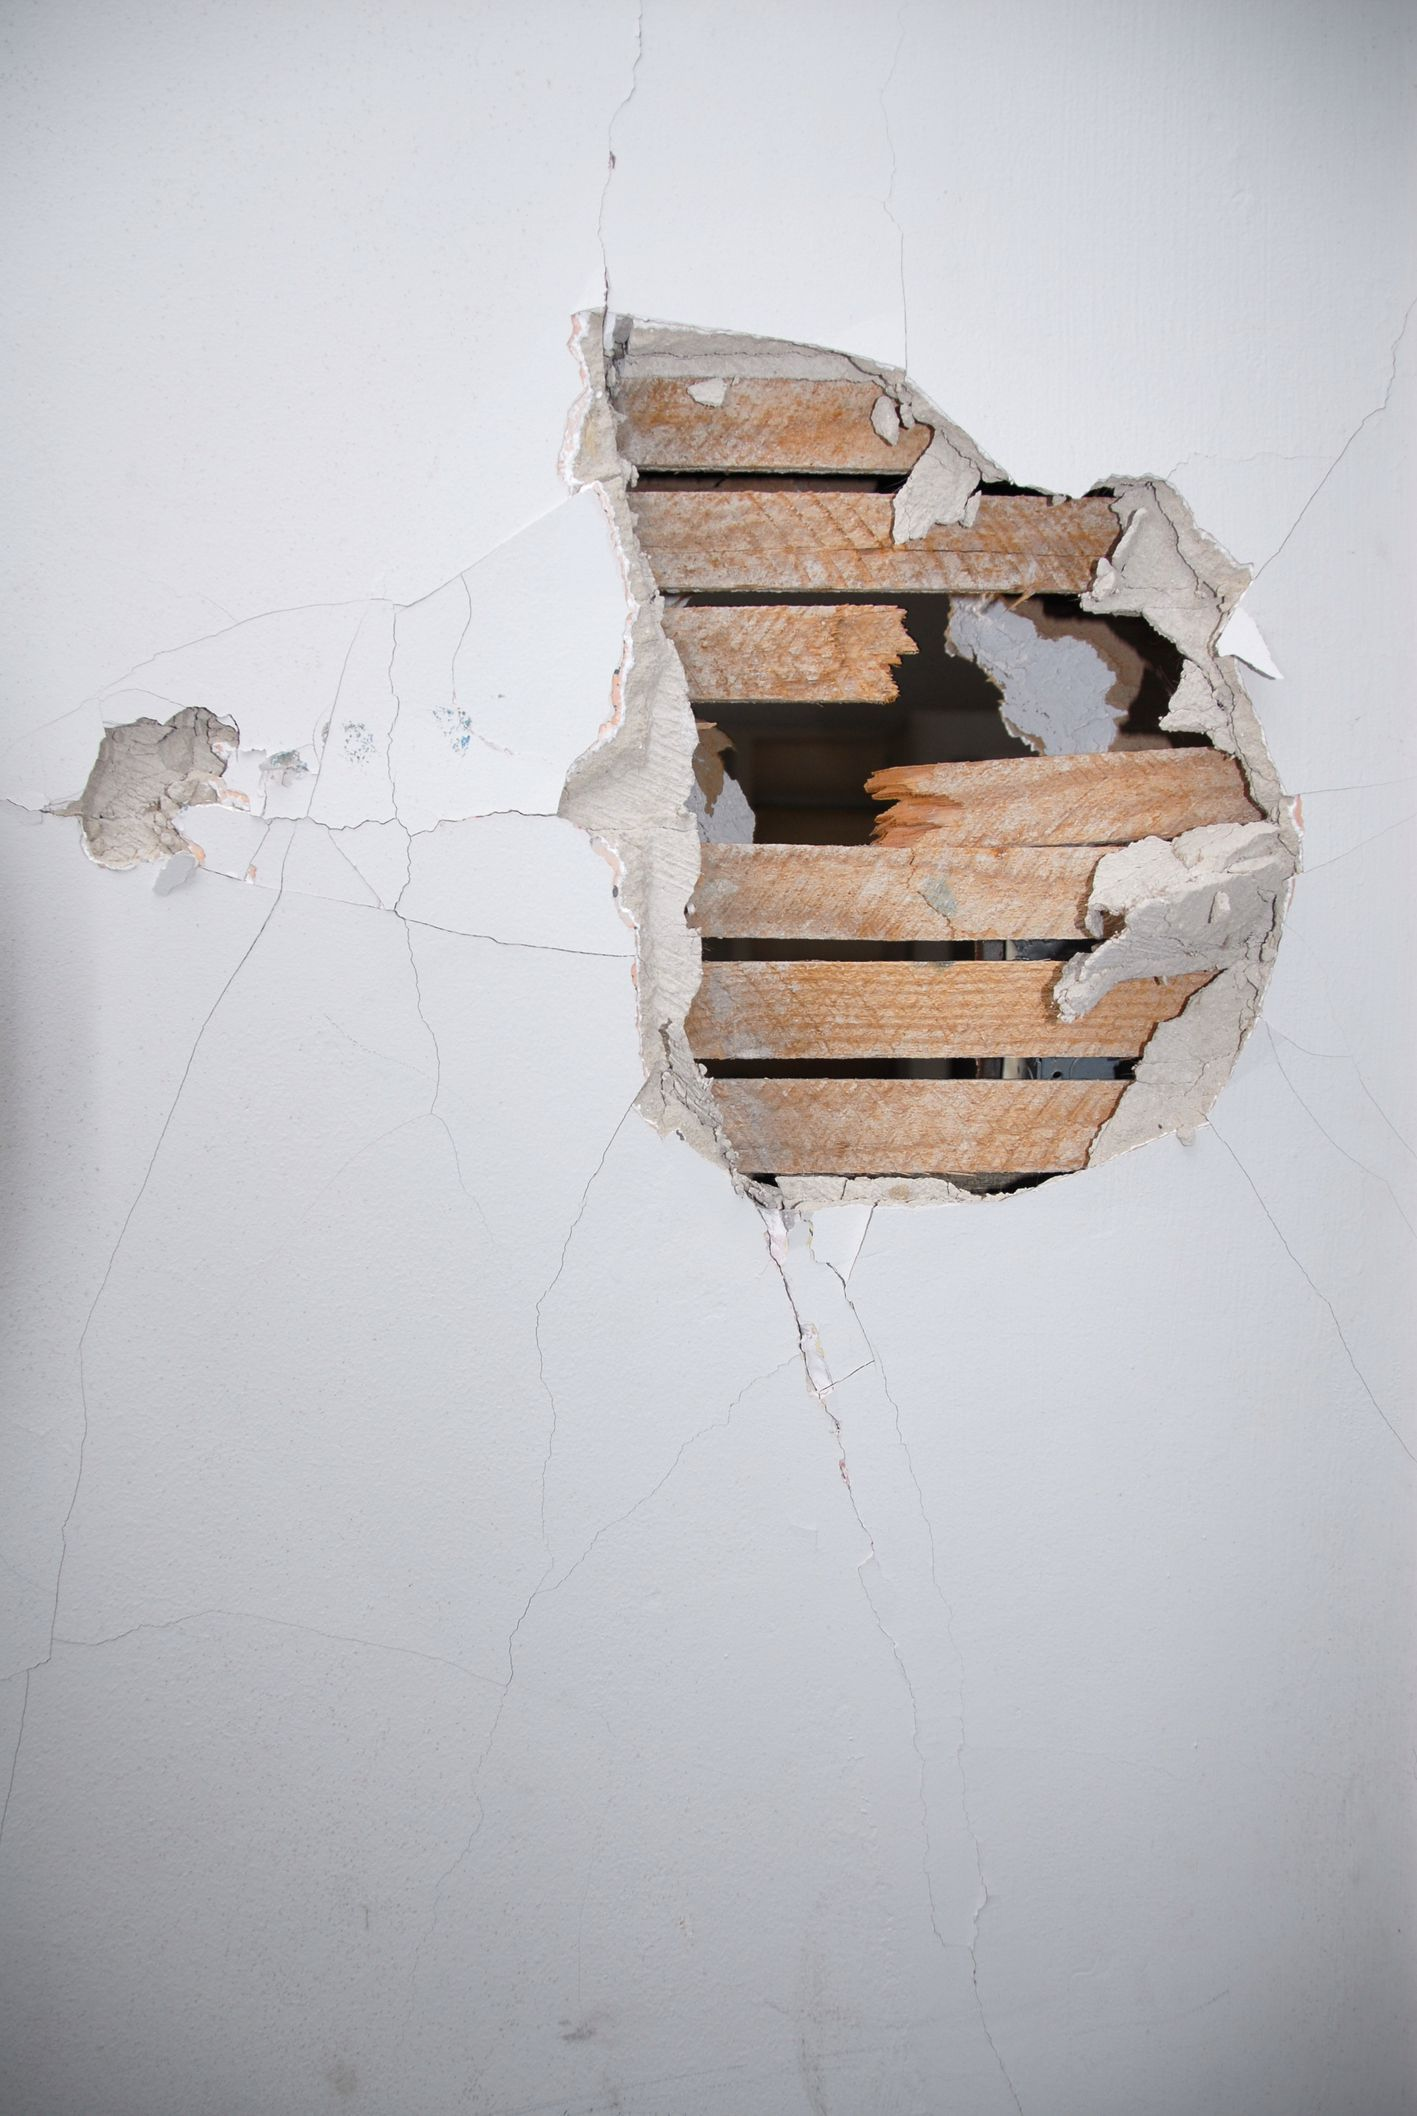 How to fix small holes in drywall break wall plaster